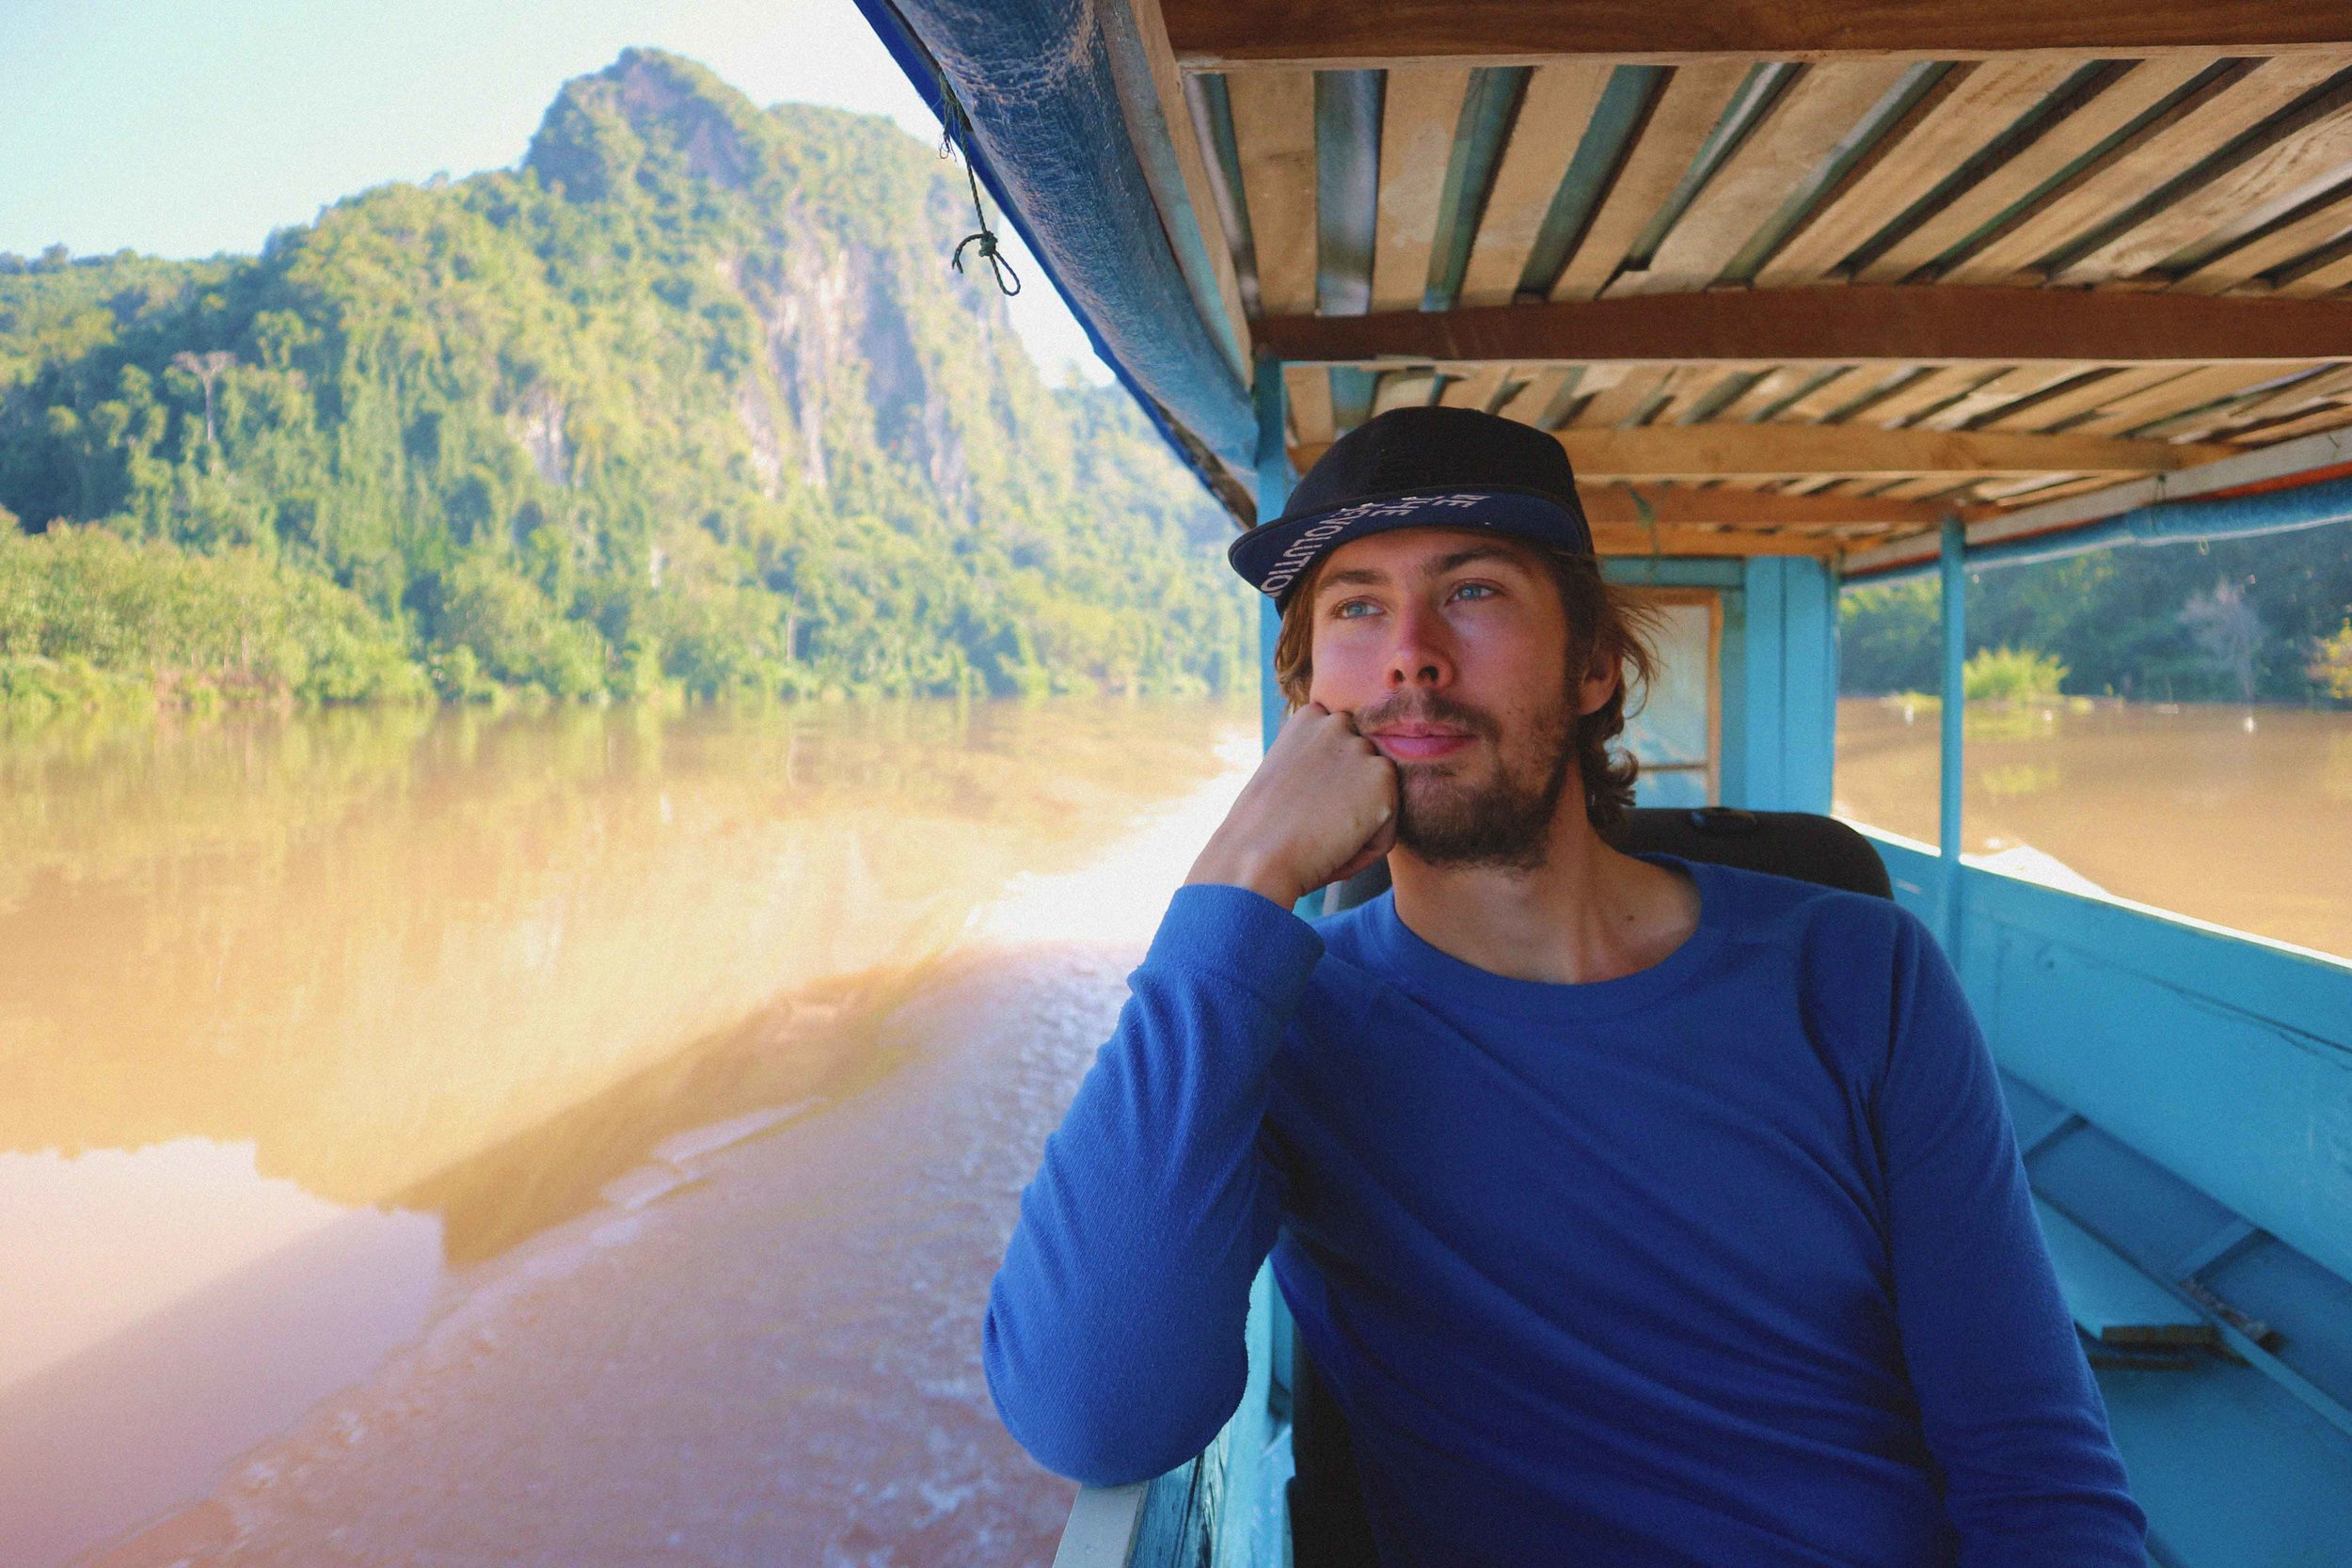 Mark chilling on a boat ride from Nong Khiaw